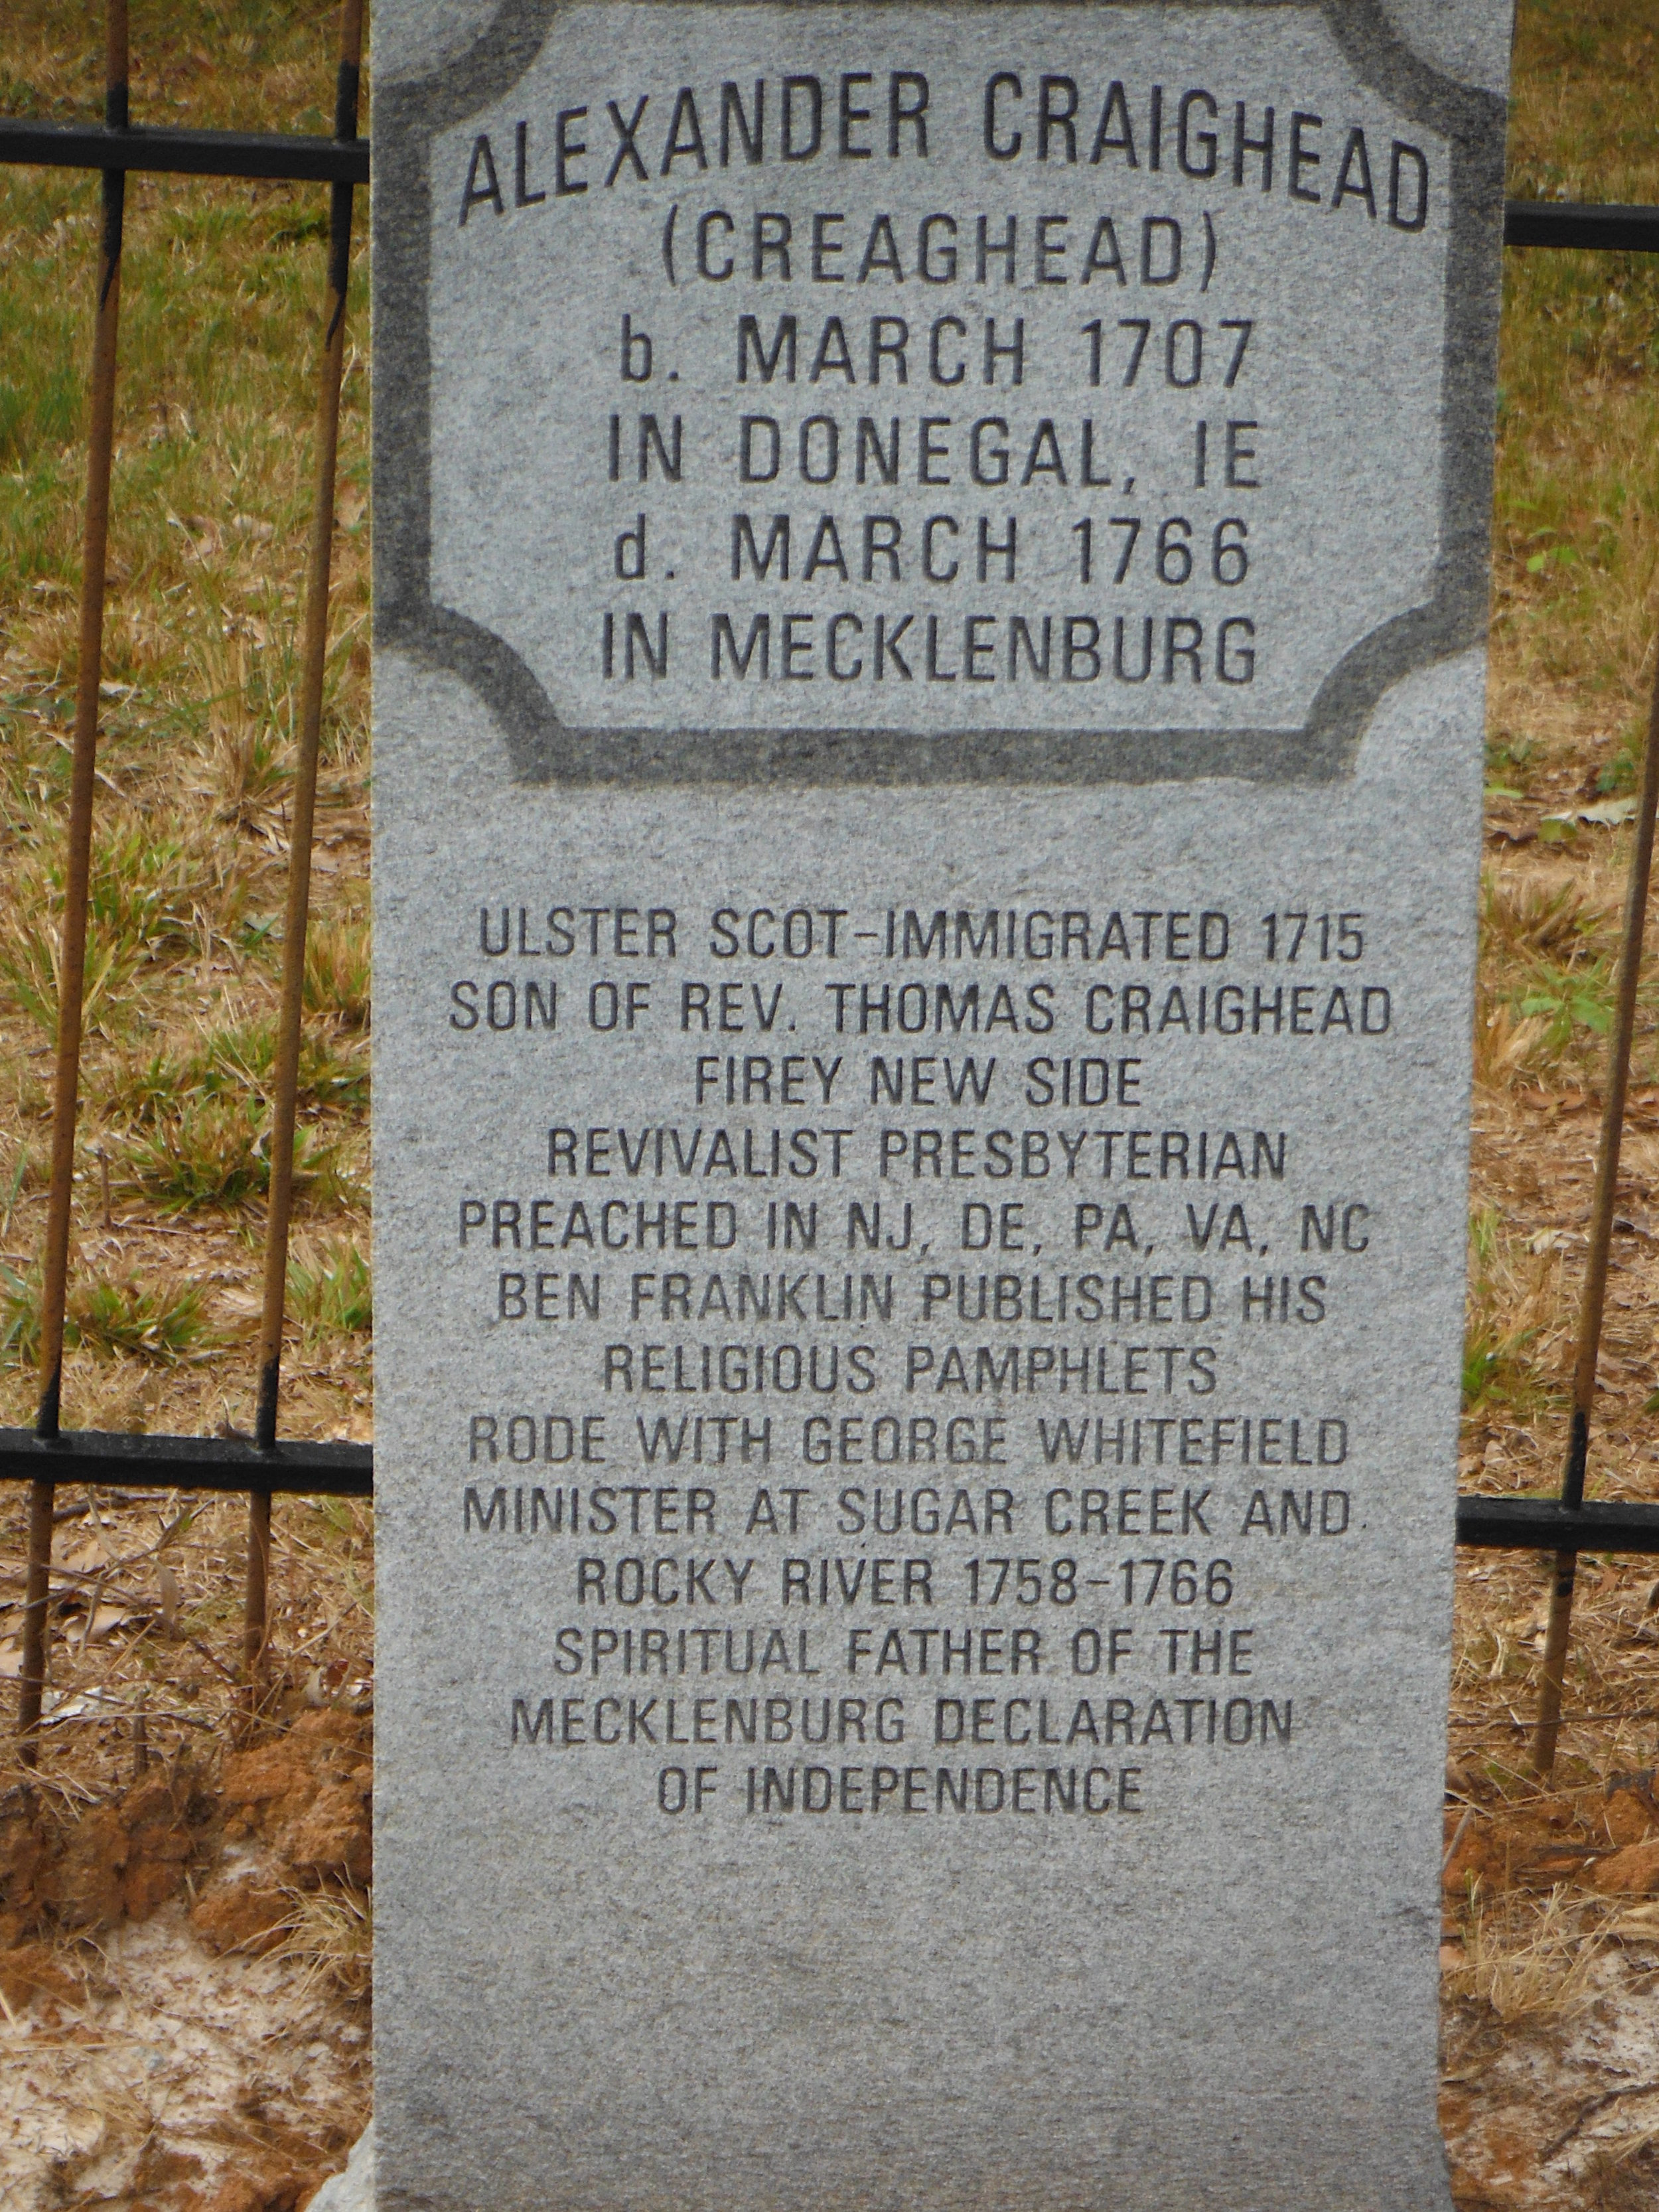 Alexander Craighead is buried at the Sugaw Creek Presbyterian Church Cemetery, Charlotte, North Carolina.